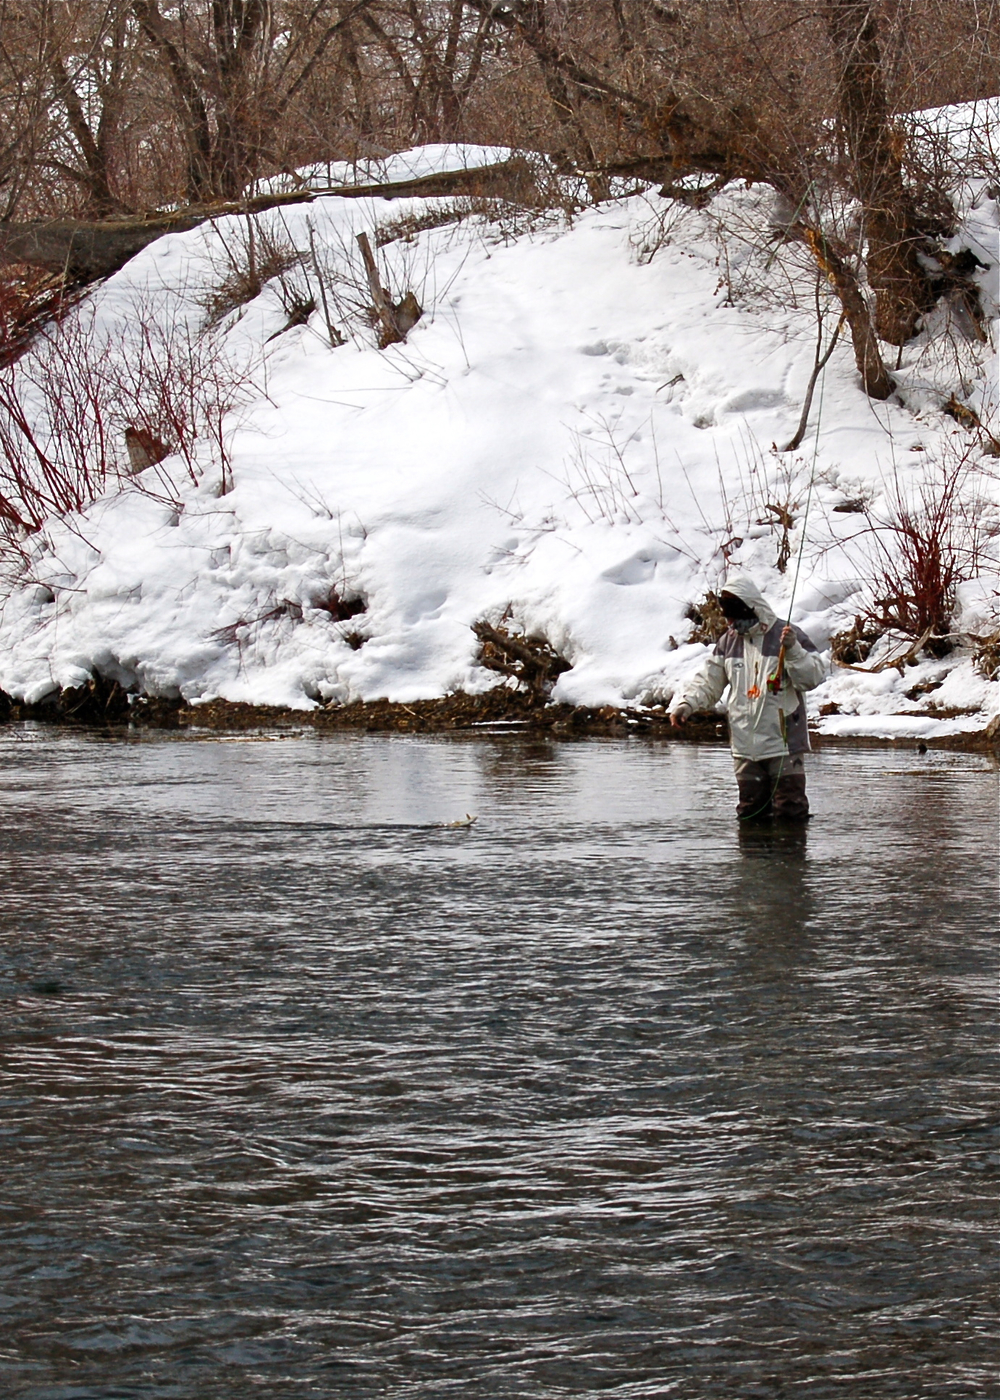 Holiday weekend brings fly fishing traffic to rivers in for Park city fly fishing